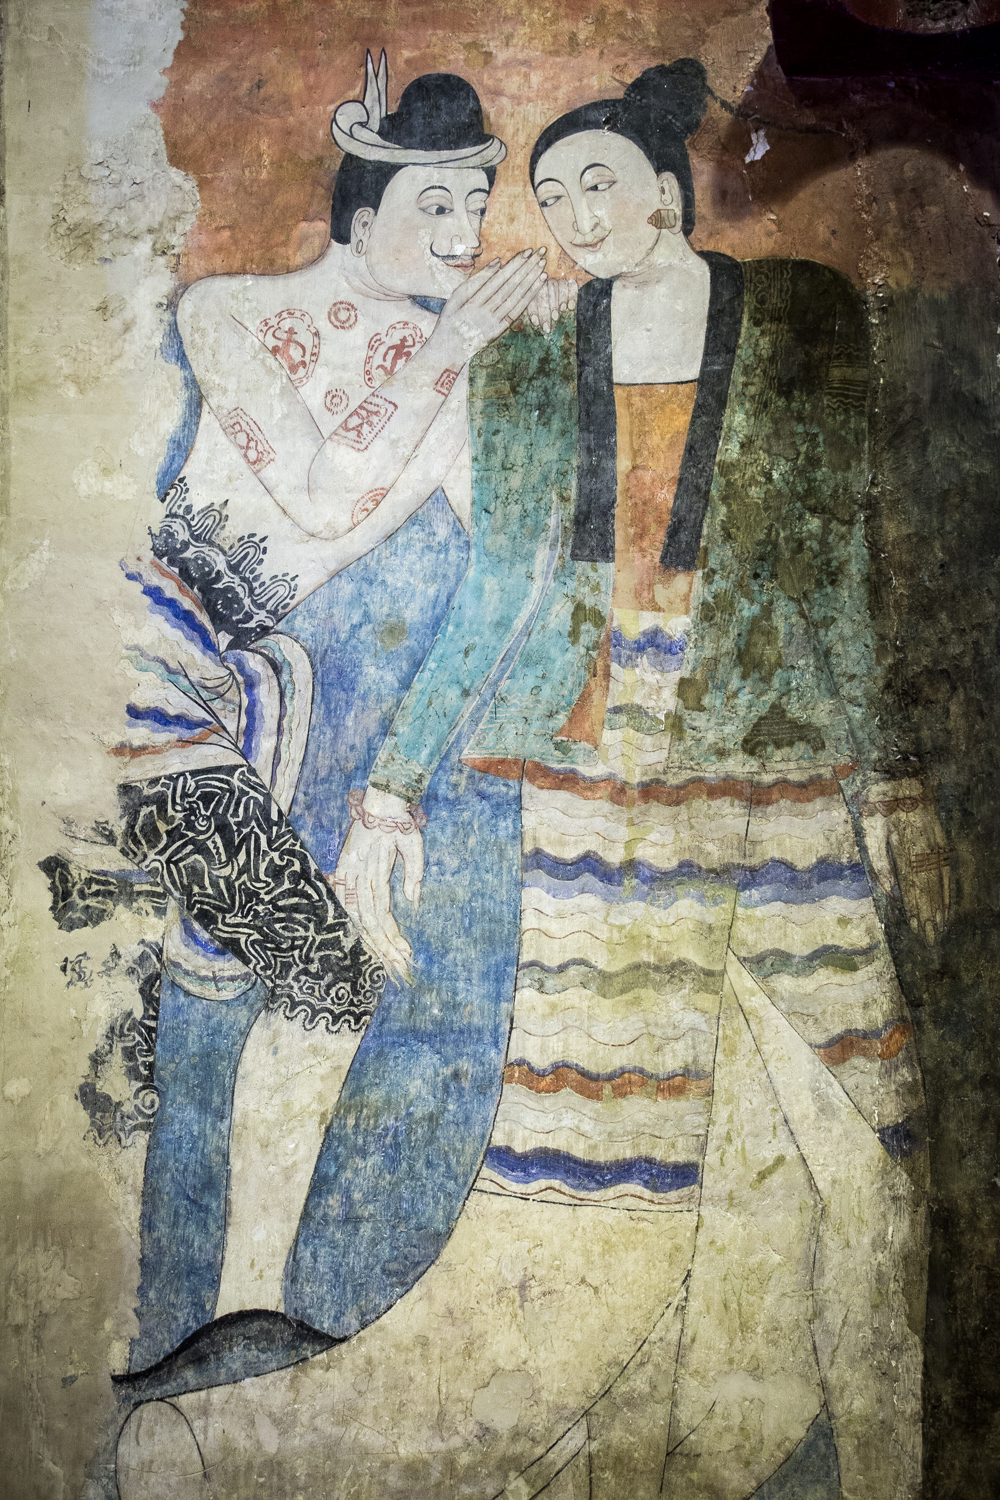 Thai Lü artist, Thit Buaphan, brazenly painted himself flirting with a women among his famed murals in Wat Phumin.